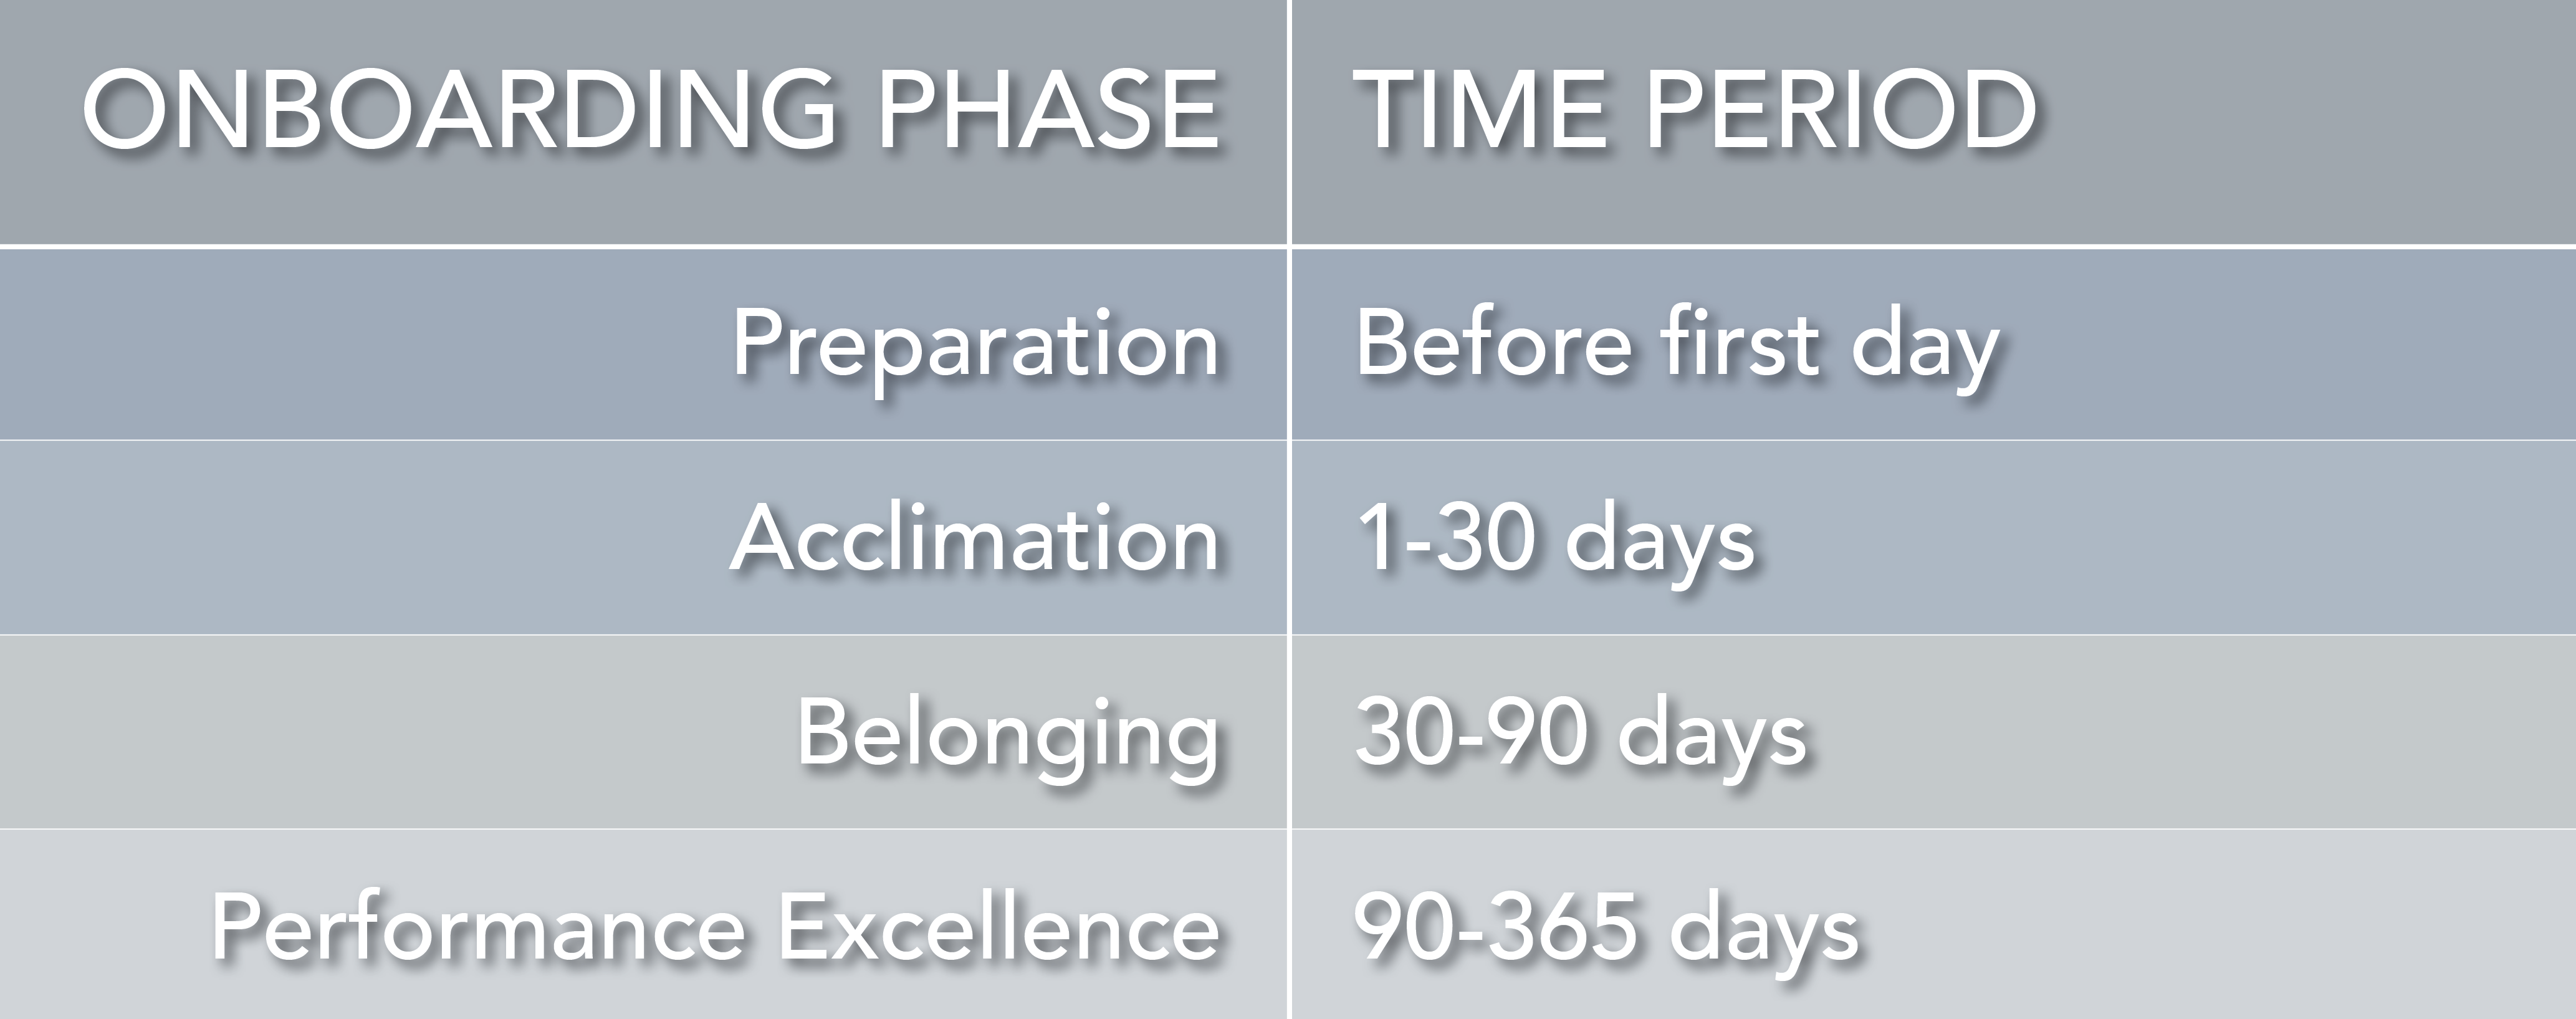 Phases of Onboarding